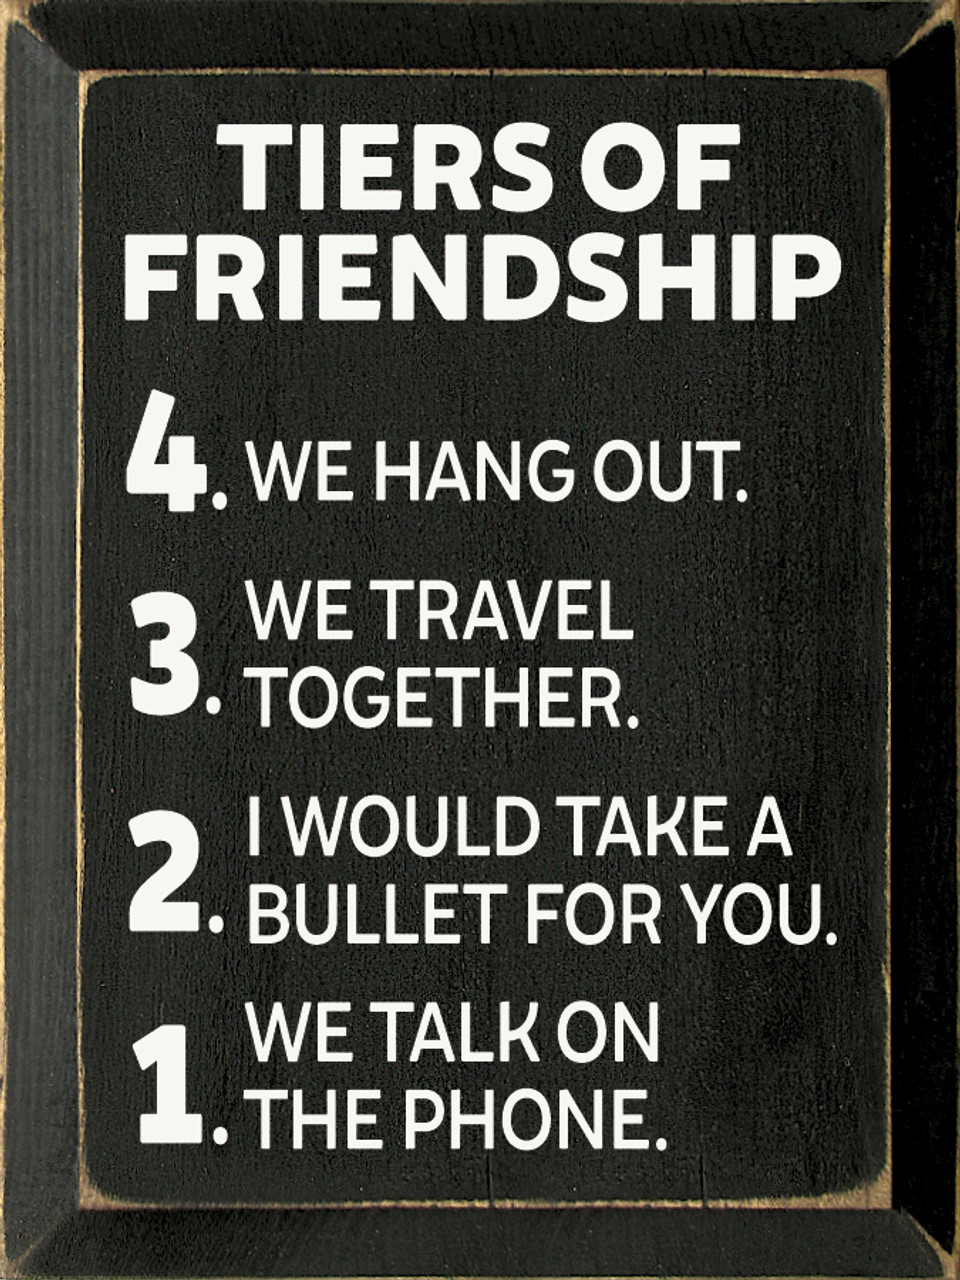 Tiers Of Friendship 4 We Hang Out 3 We Travel Together 2 I Would